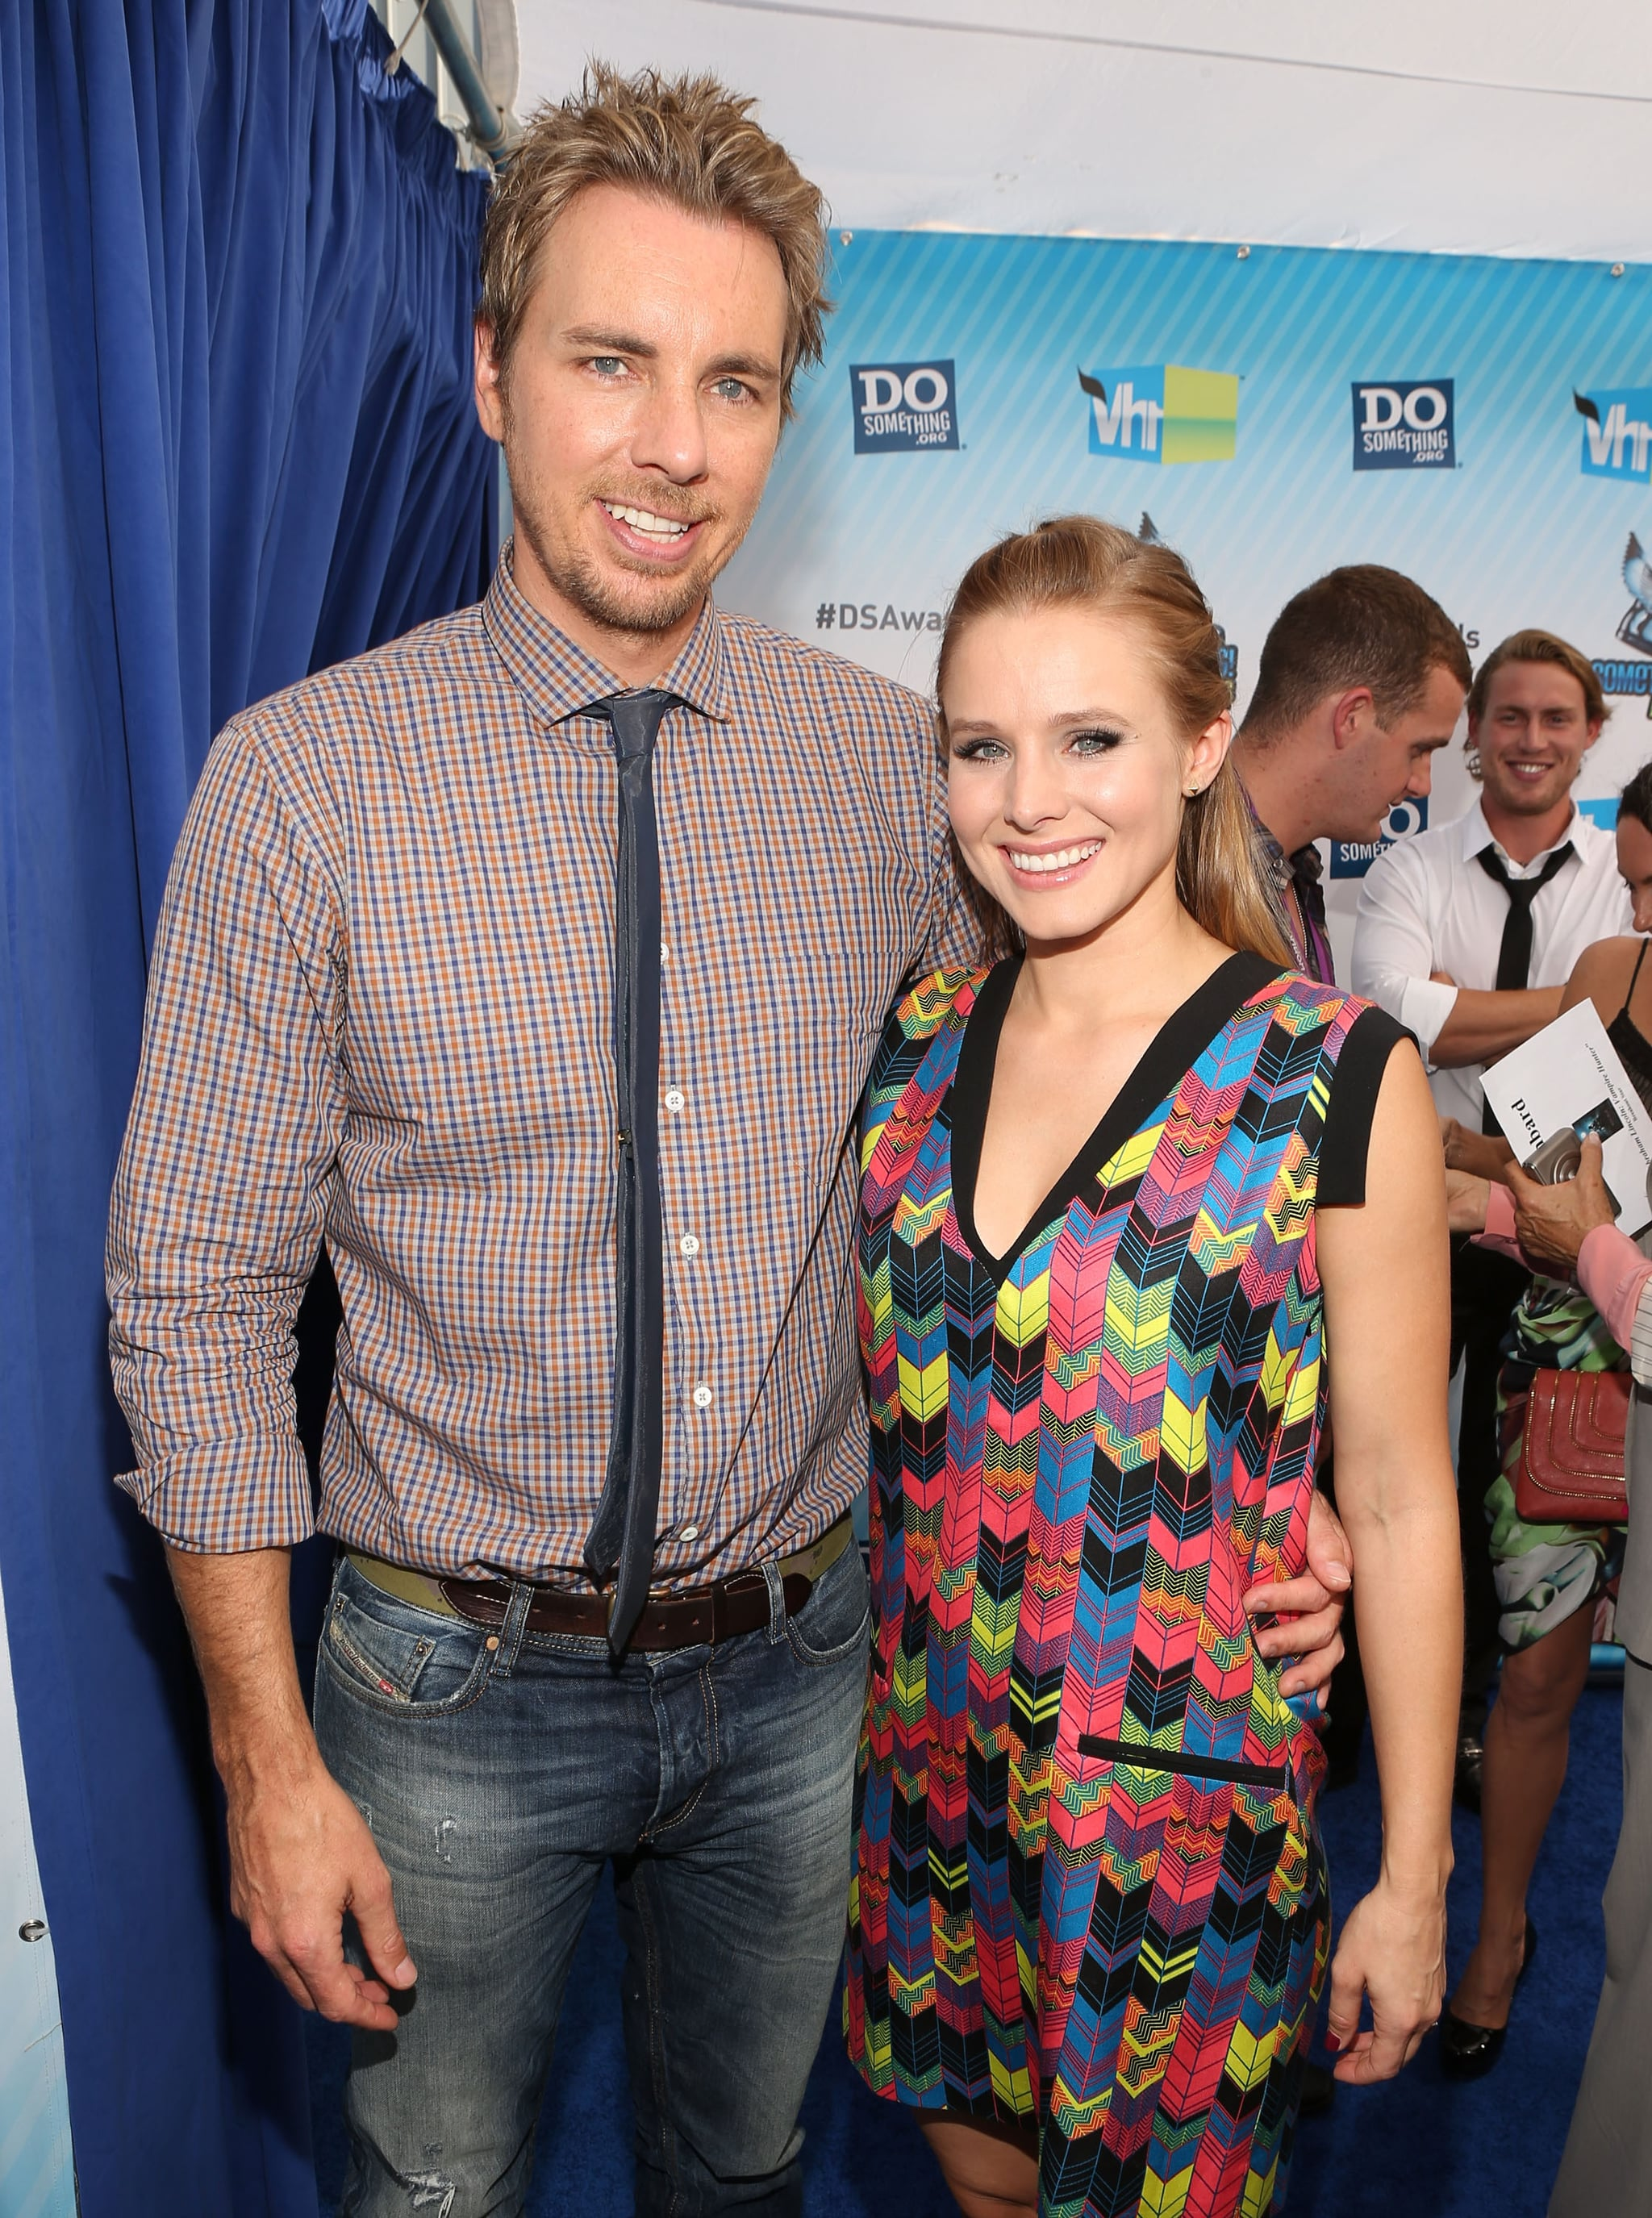 Kristen Bell and Dax Shepard got together backstage at the Do Something Awards.